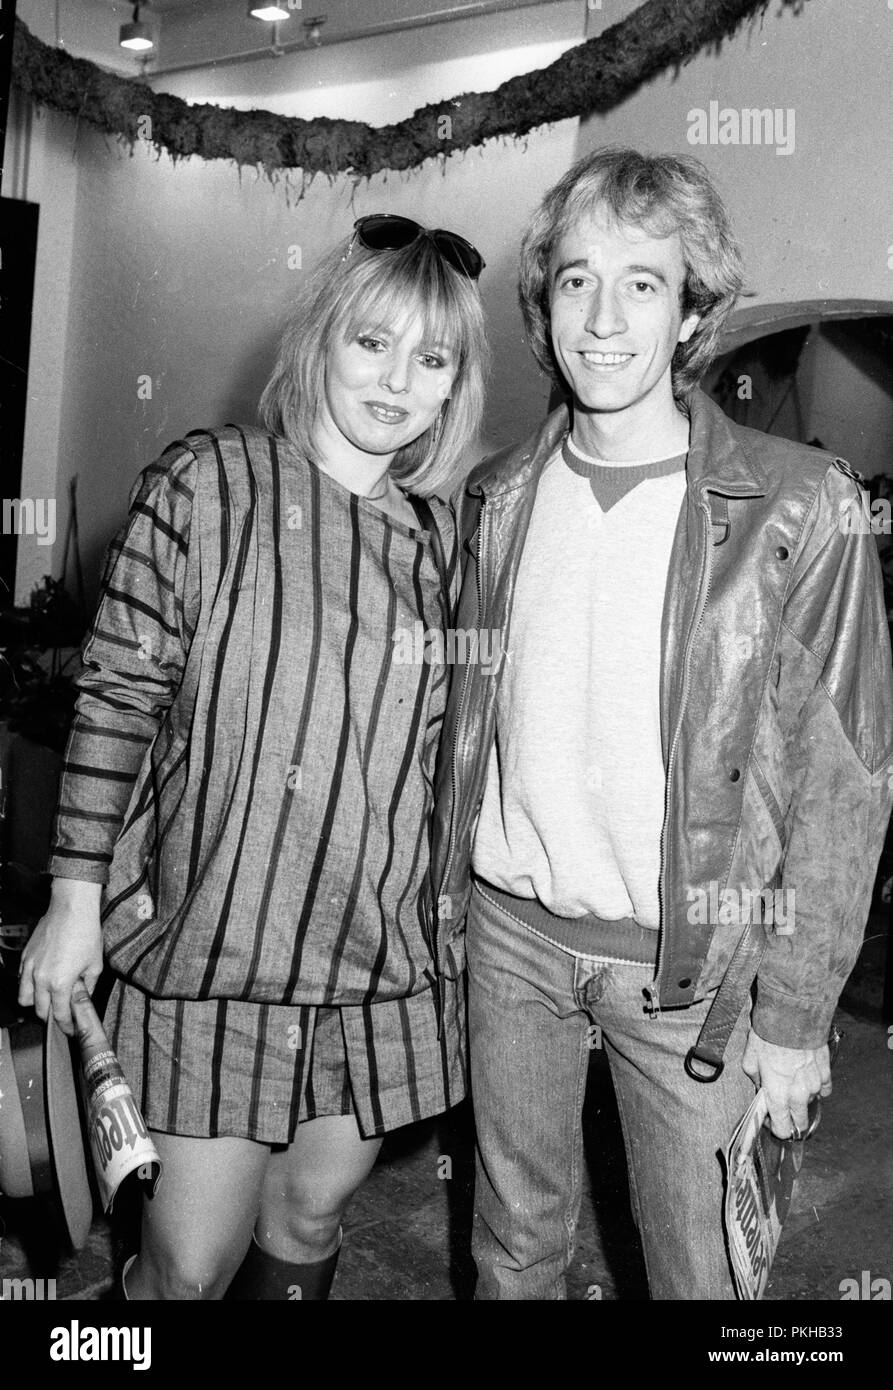 UK. *** Robin Gibb (62 Years old), singer with the legendary British band the Bee Gees, was in a coma in hospital Sunday after contracting pneumonia in his battle against cancer.*** Robin Gibb and his wife, Dwina. Circa 1980s. Ref: LMK11-33463TSTO-160412 Stoddart/Landmark/ MediaPunch - Stock Image